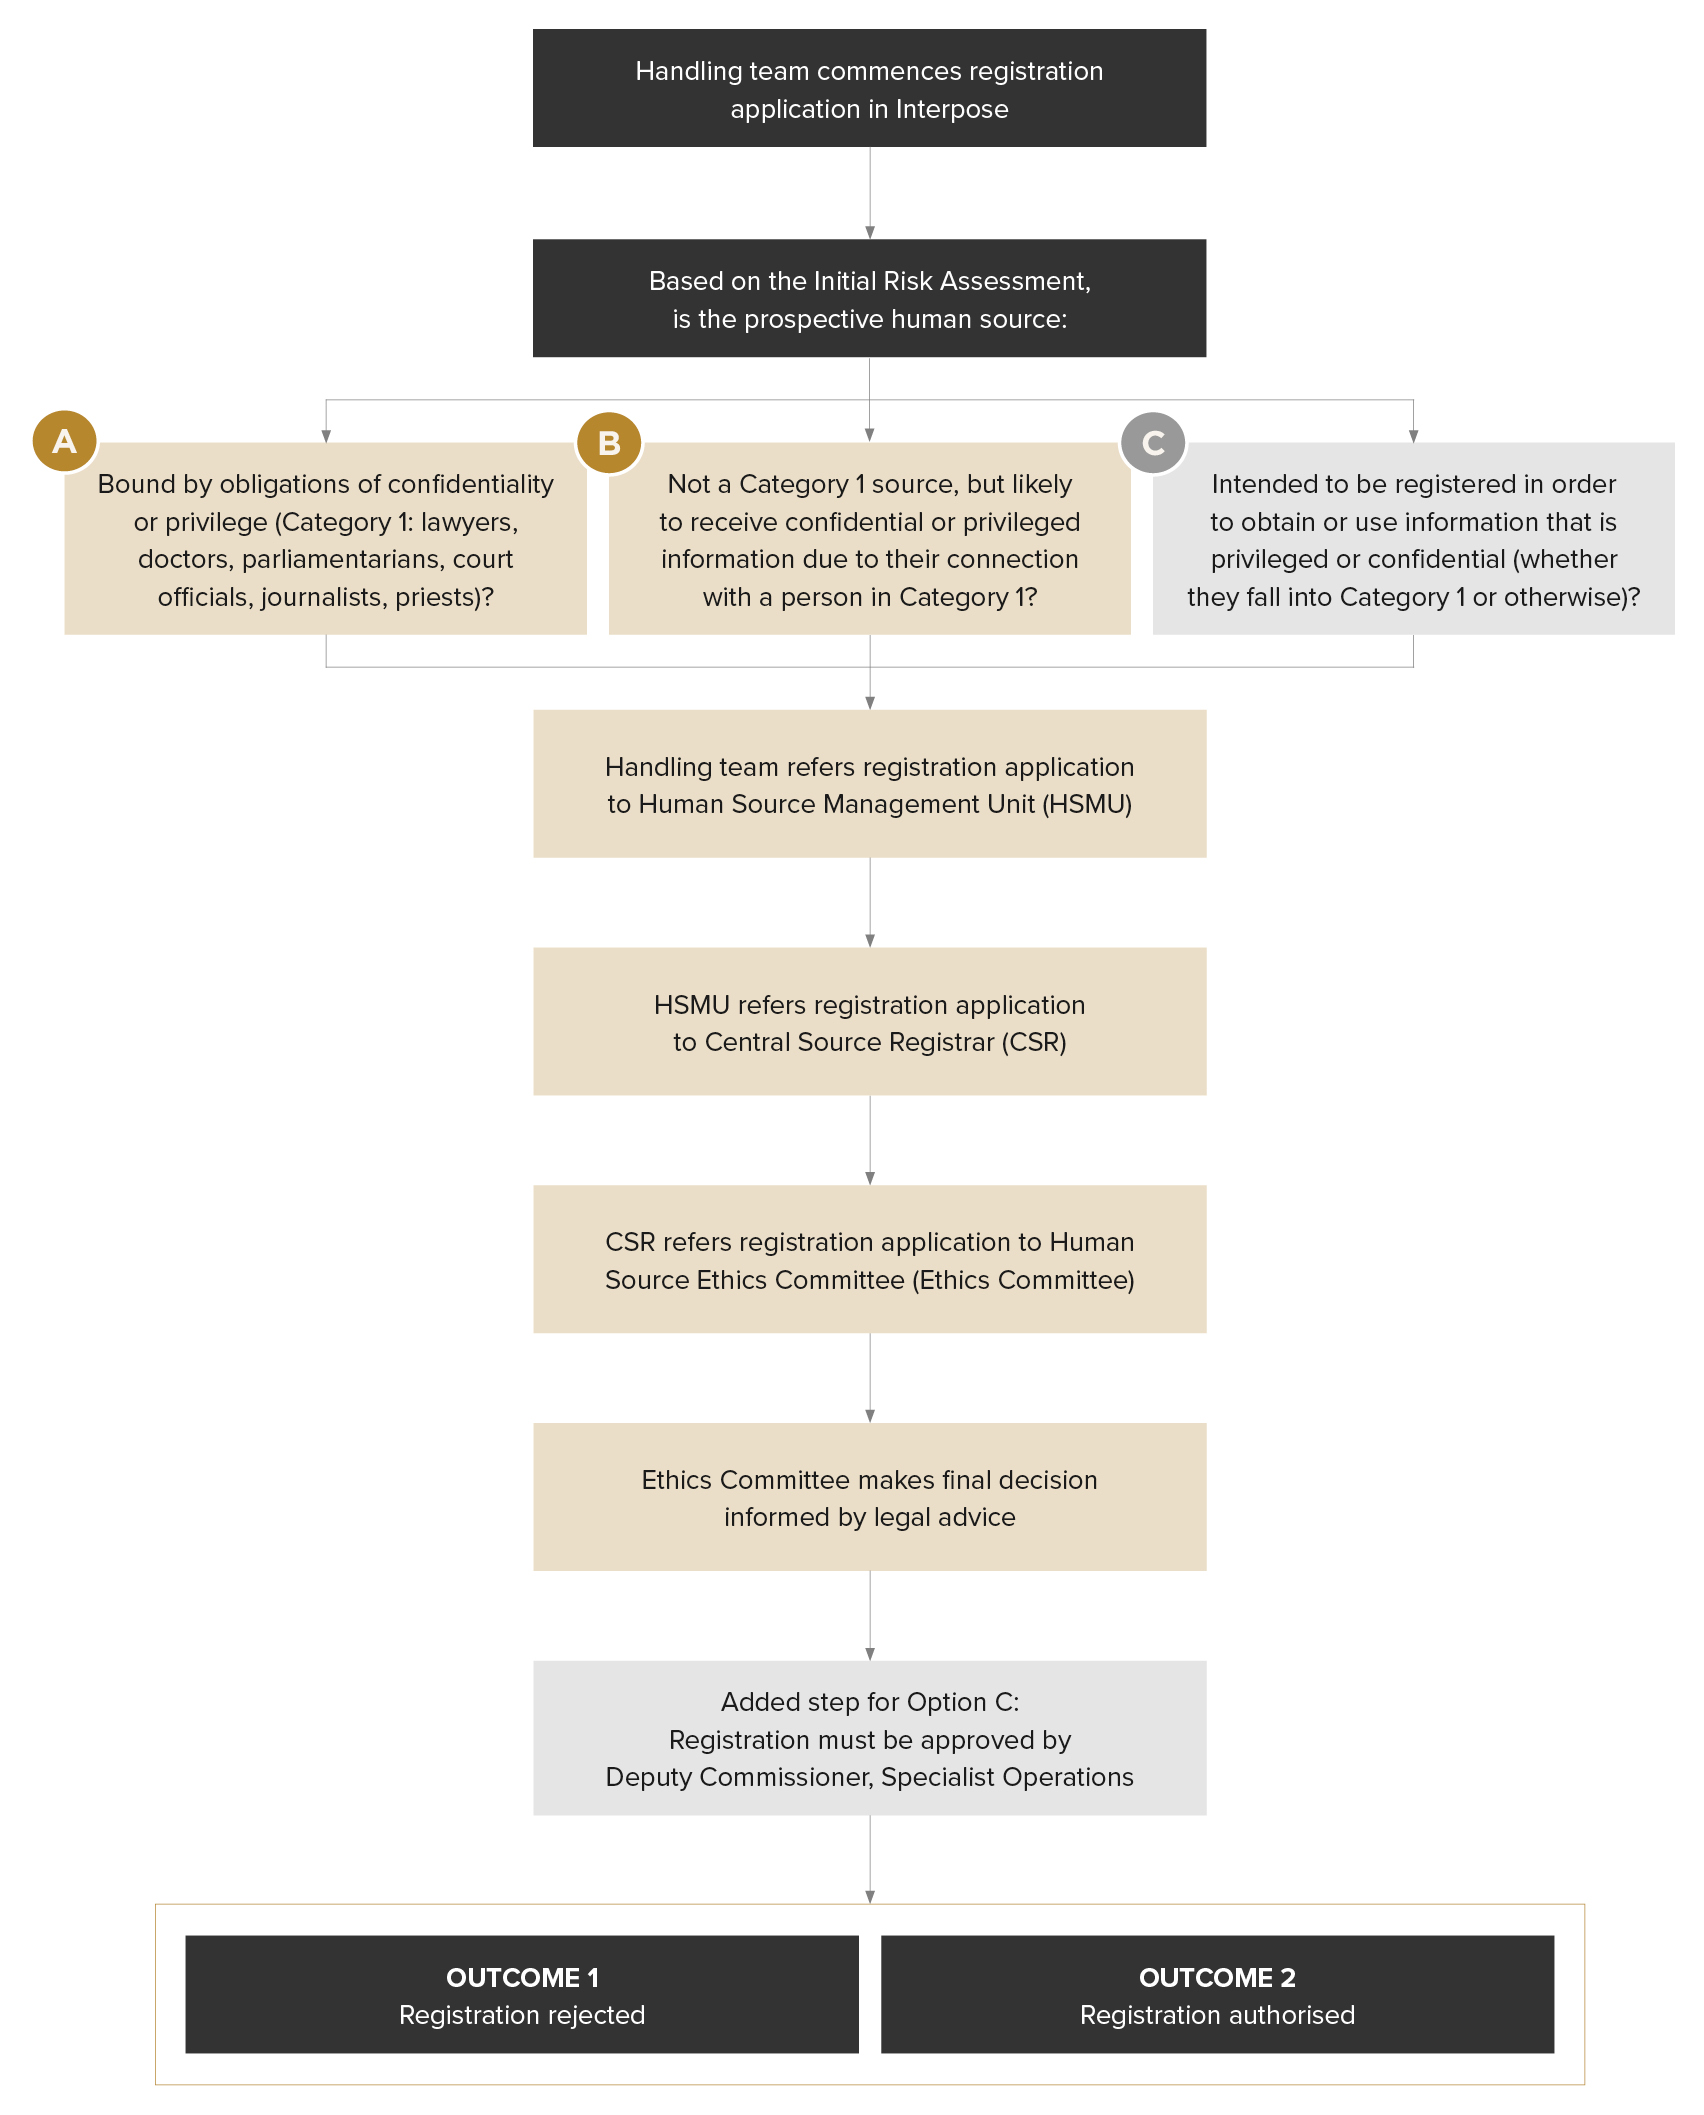 Figure 12.2- Current registration process for human sources involving legal obligations of confidentiality or privilege